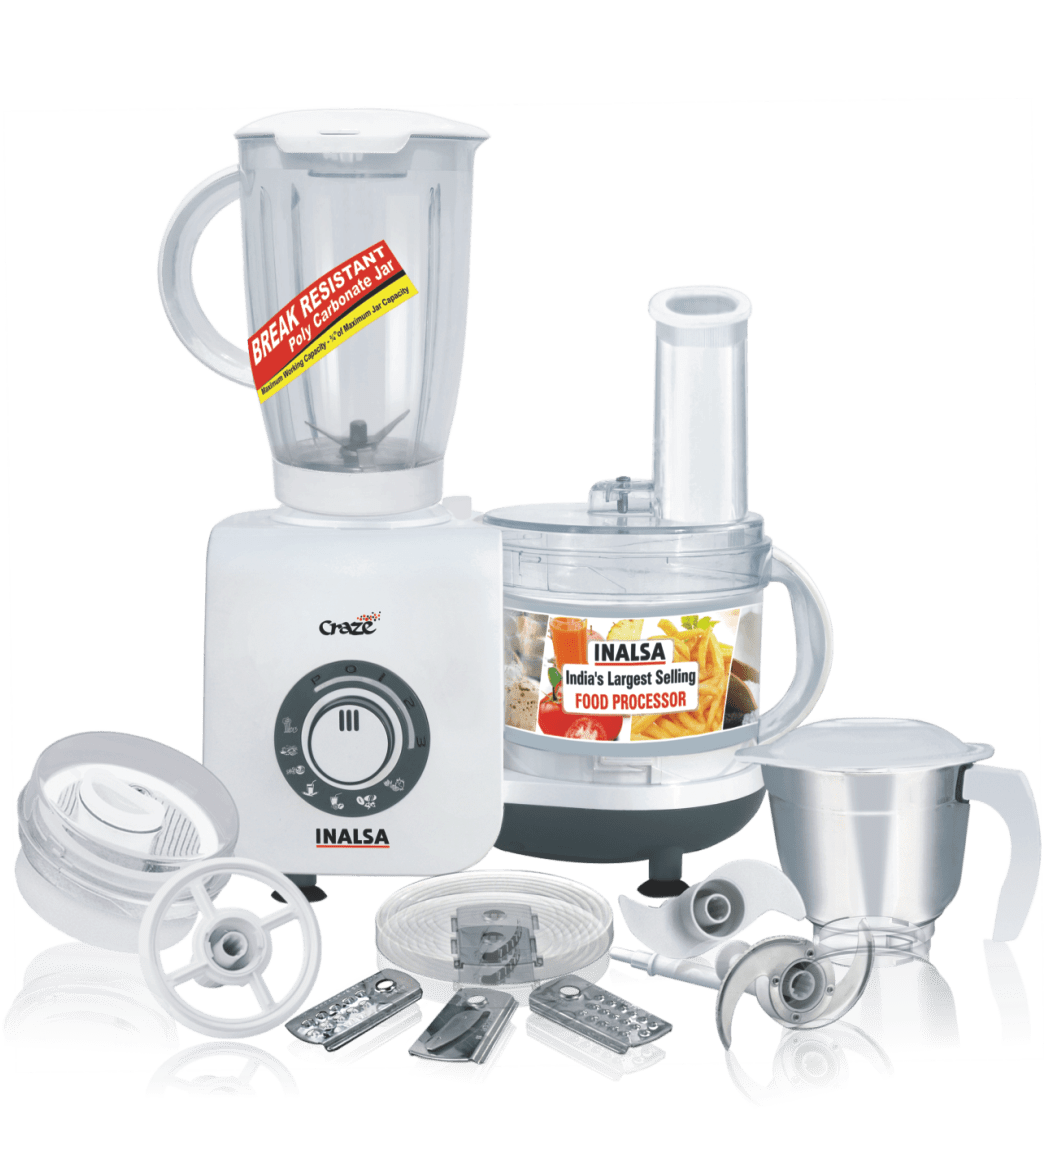 INALSA FOOD PROCESSOR CRAZE 700W - Gogia bartan store